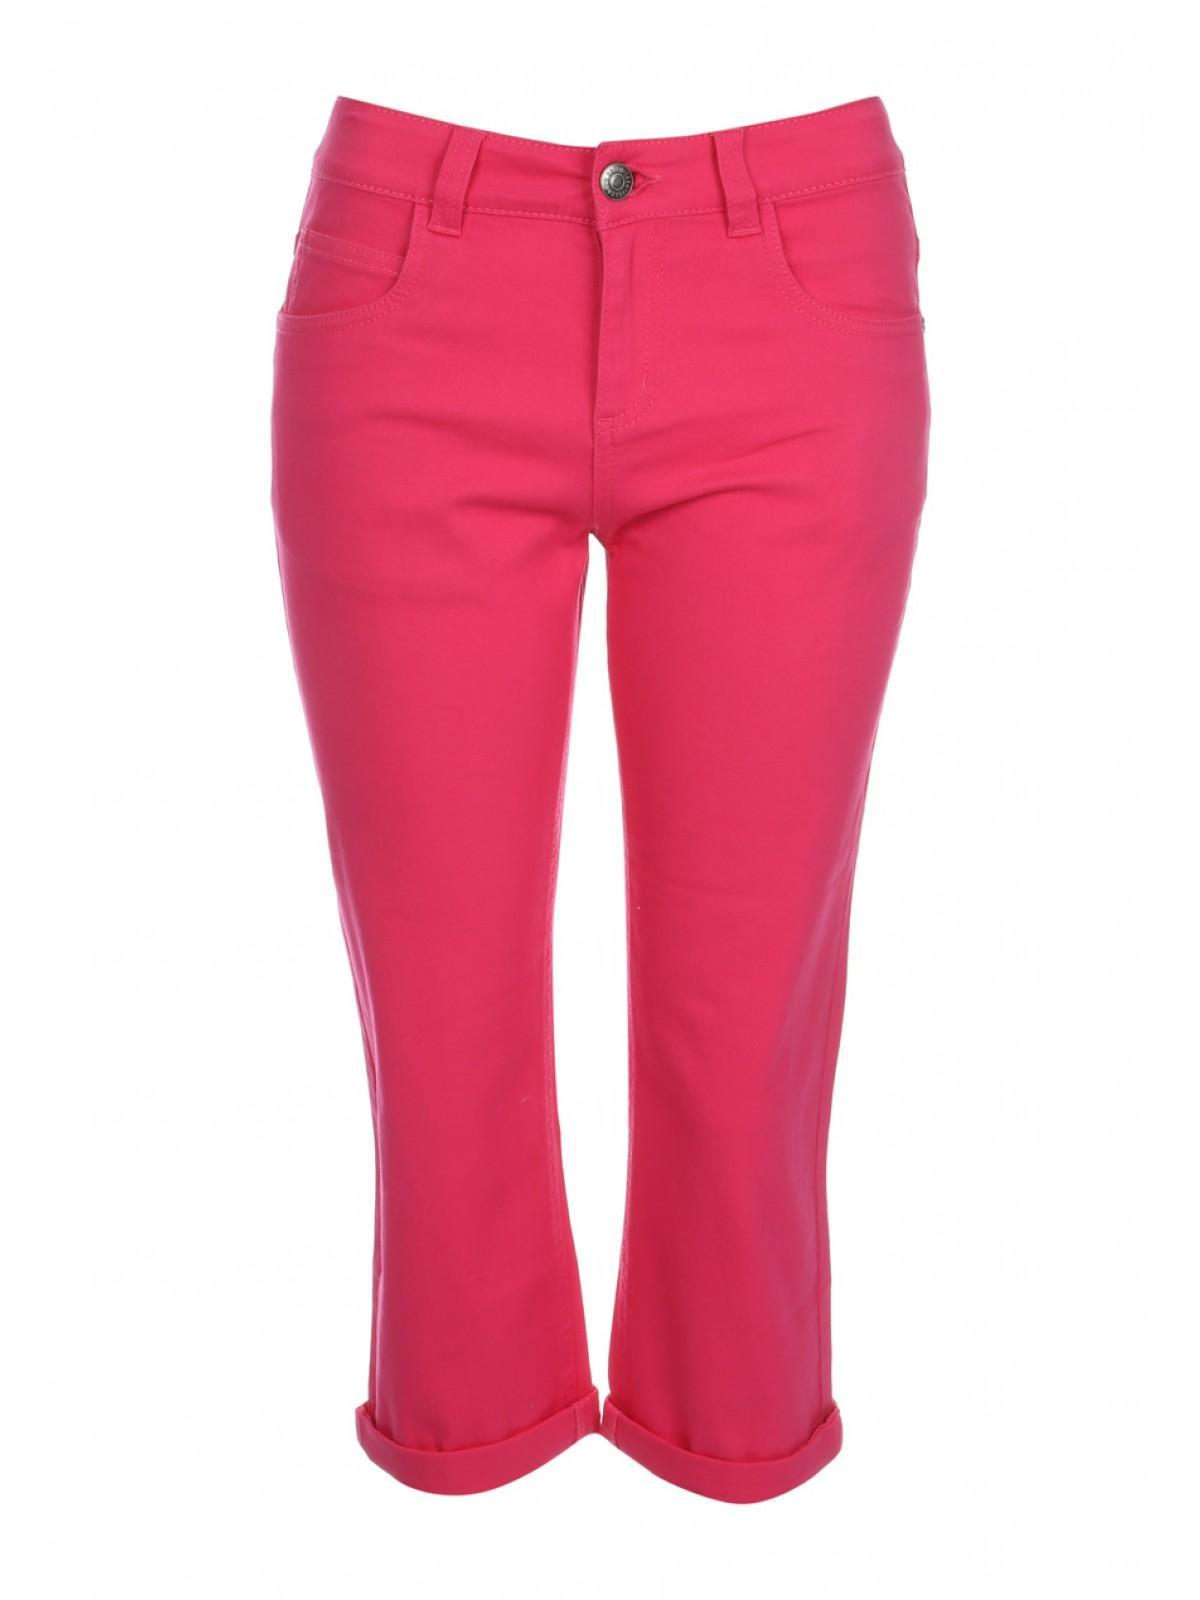 Womens Crop Coloured Jeans | Peacocks